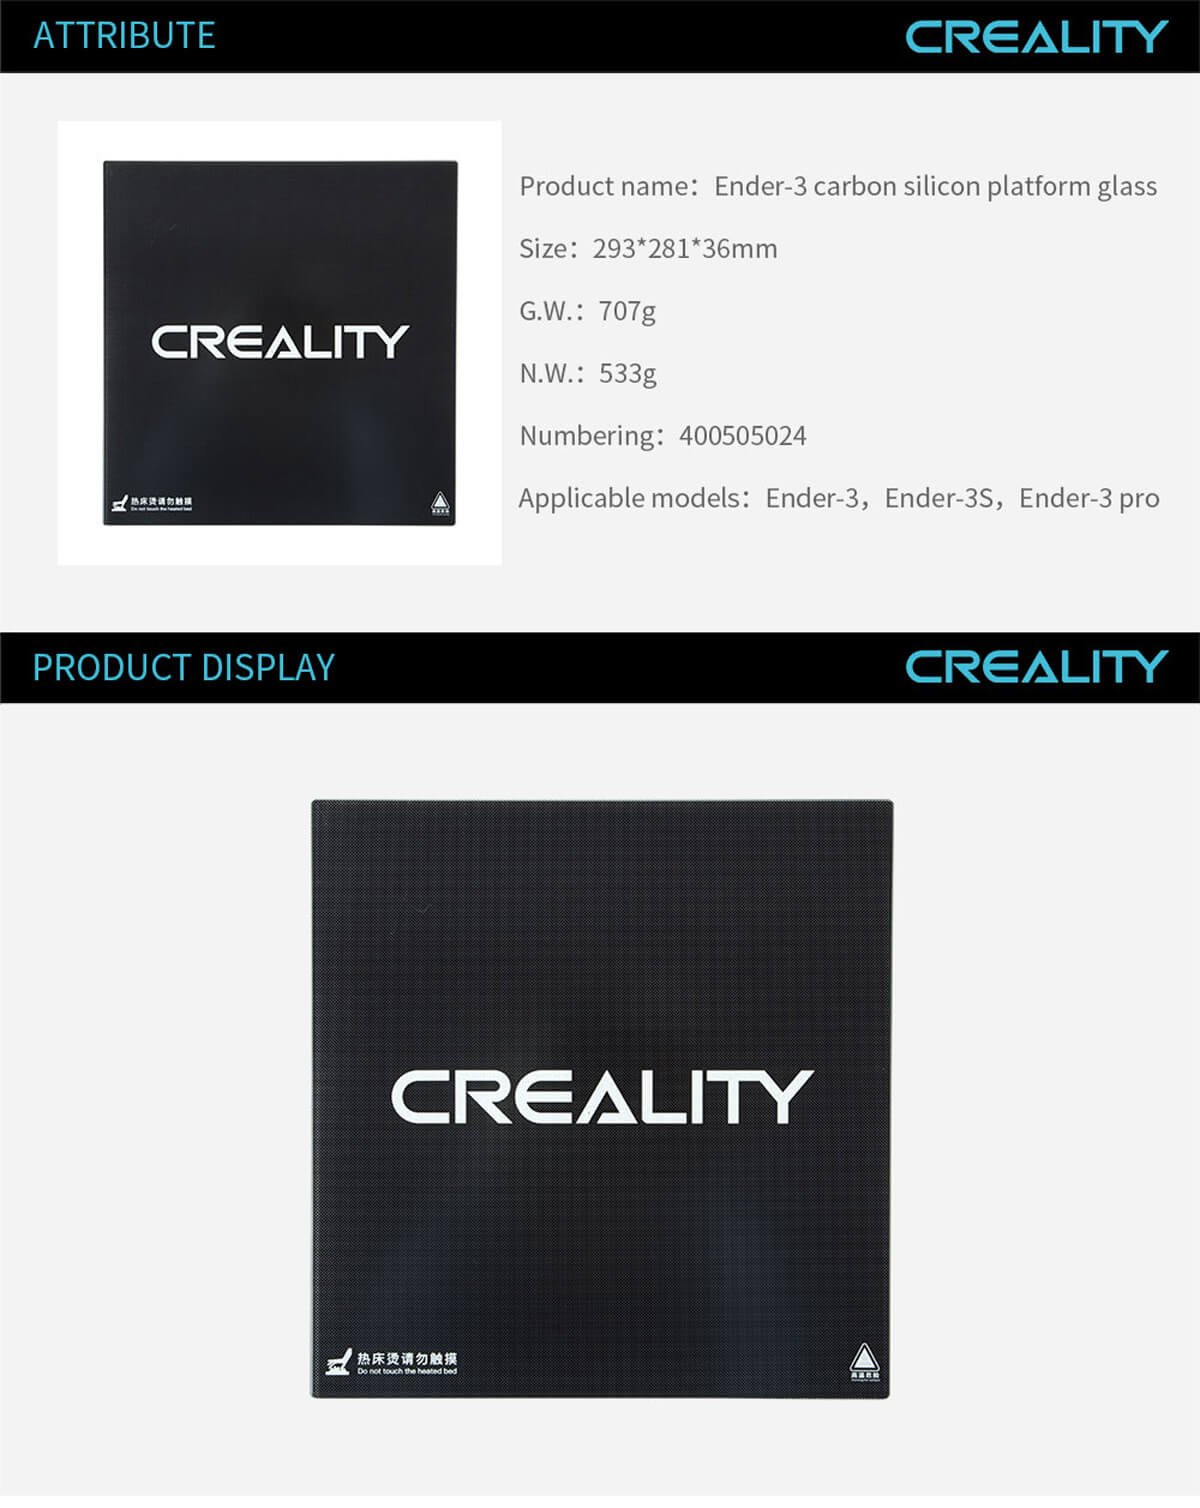 creality-3d-printer-Ender-3-Carbon-Silicon-Platform-Glass-11